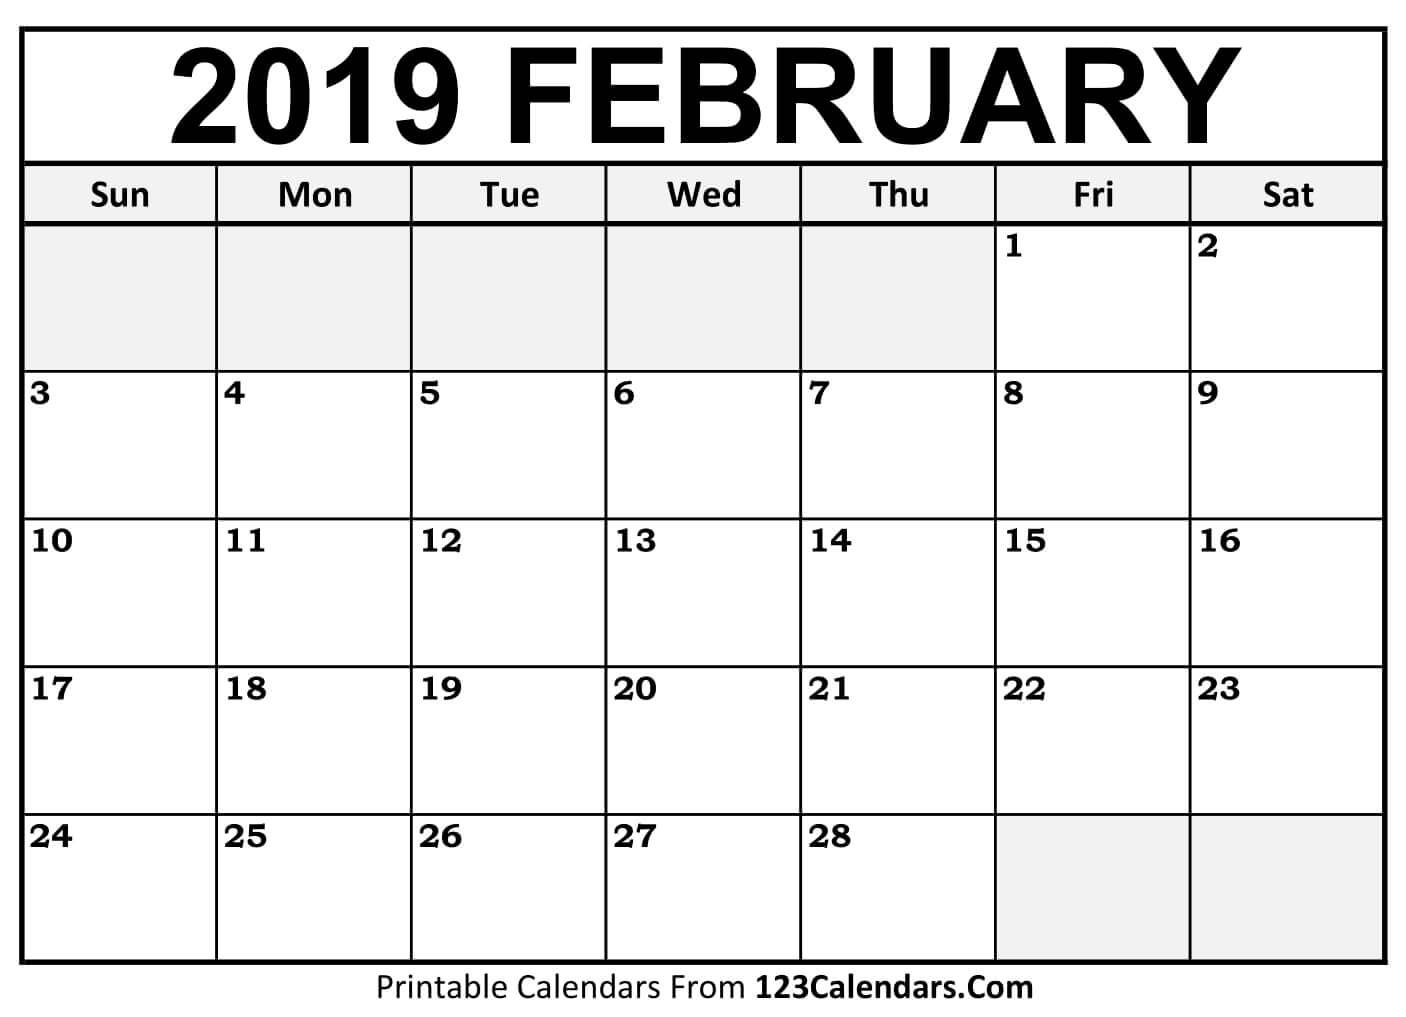 2019 February Calendar Holidays In Word - Free Printable Calendar Calendar Of 2019 February